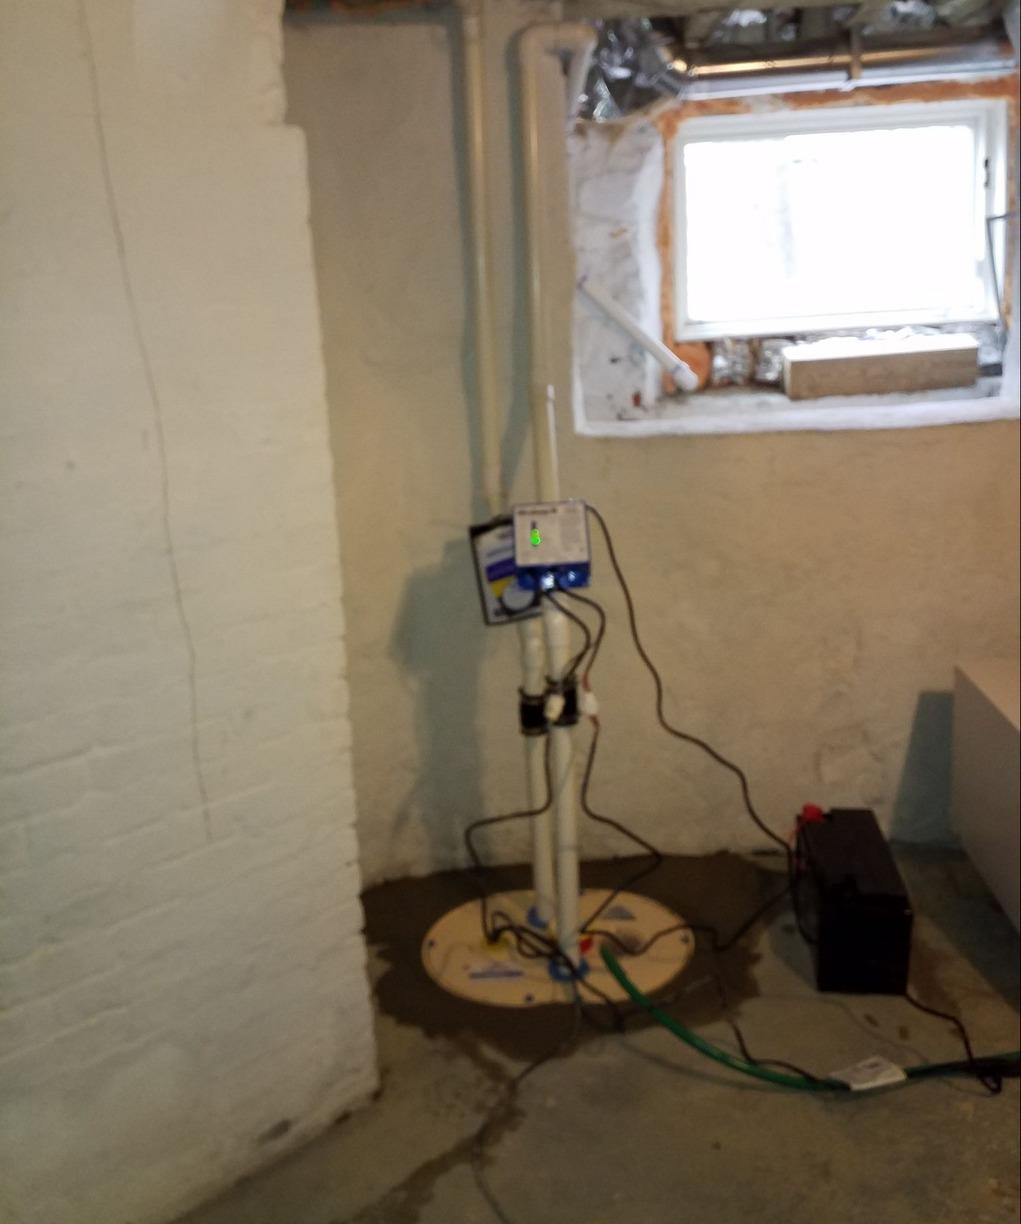 Sump Pump Replacement in Kempton, Pa - After Photo